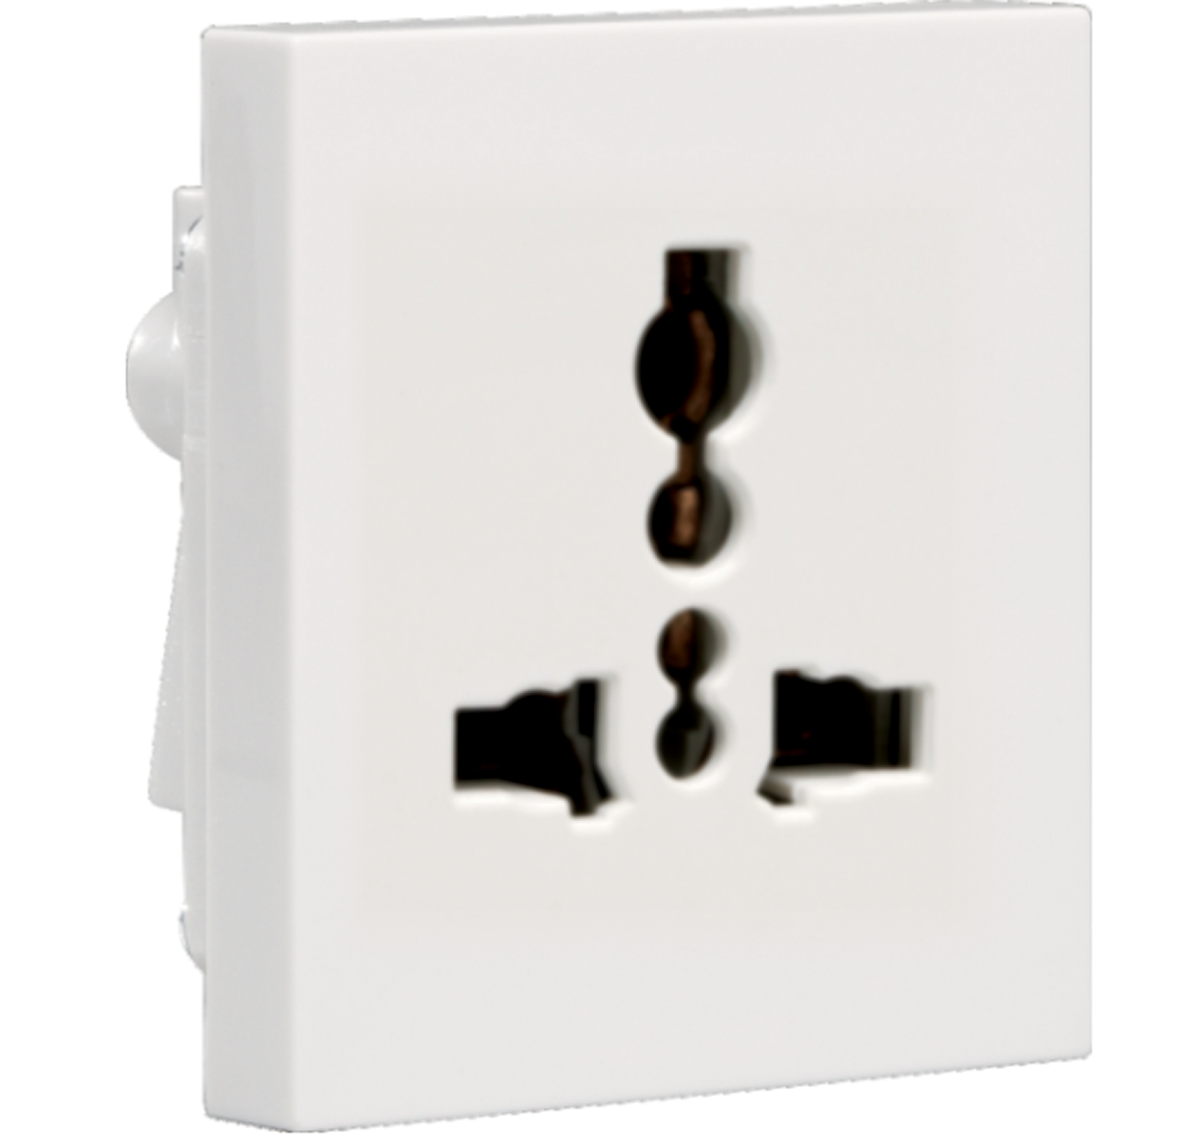 Crabtree - 6 A - 13 A universal socket